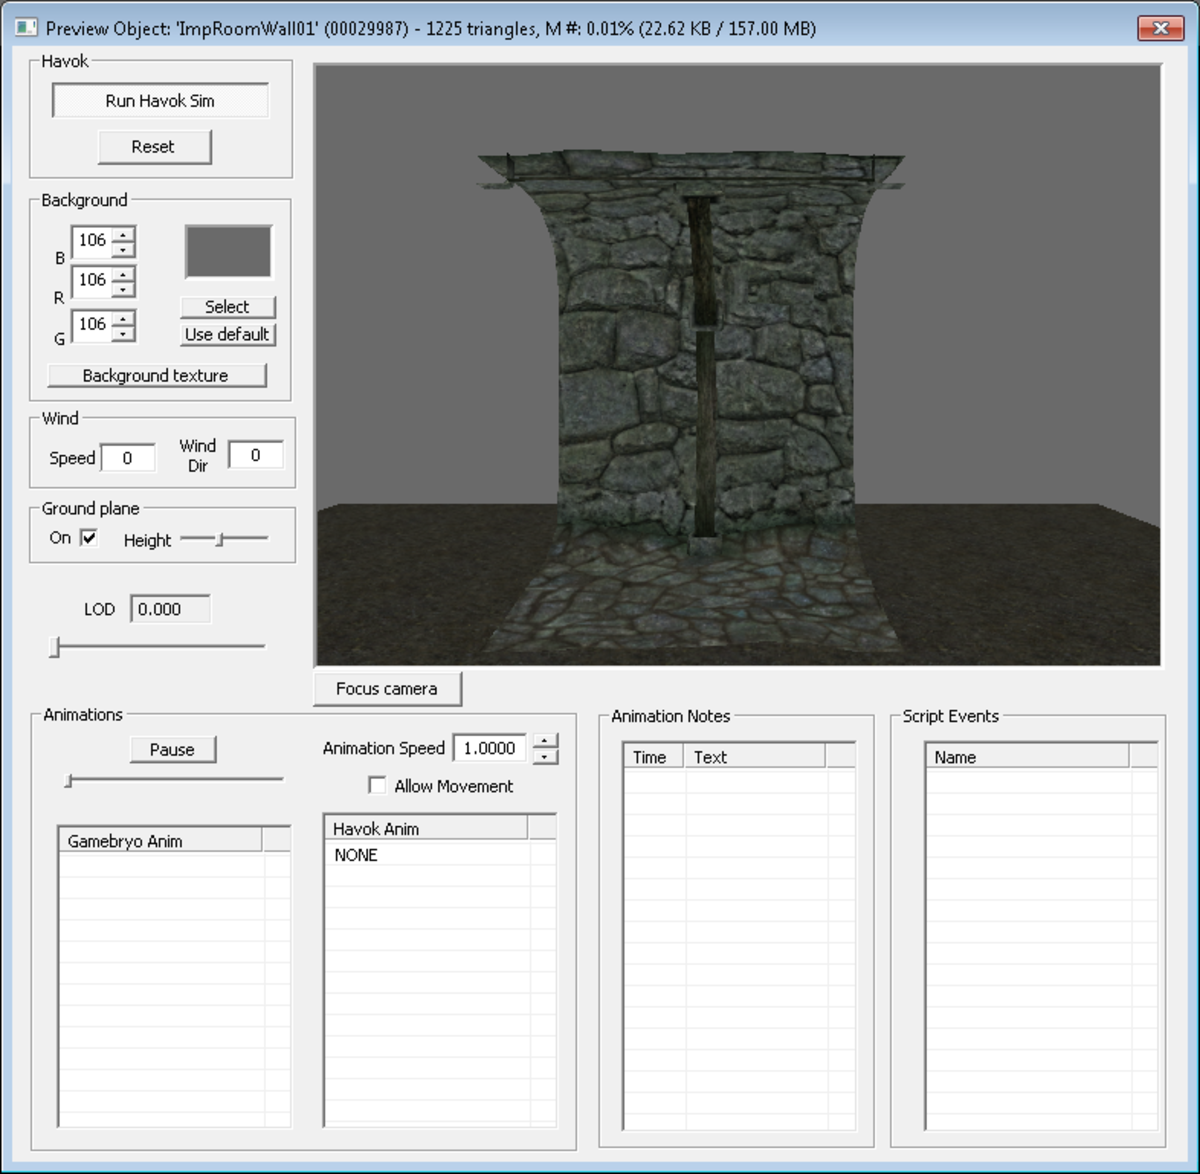 The Preview Object Window in the Skyrim Creation Kit allows you to look at an object before adding it to your mod, saving you a lot of time when selecting objects to use.